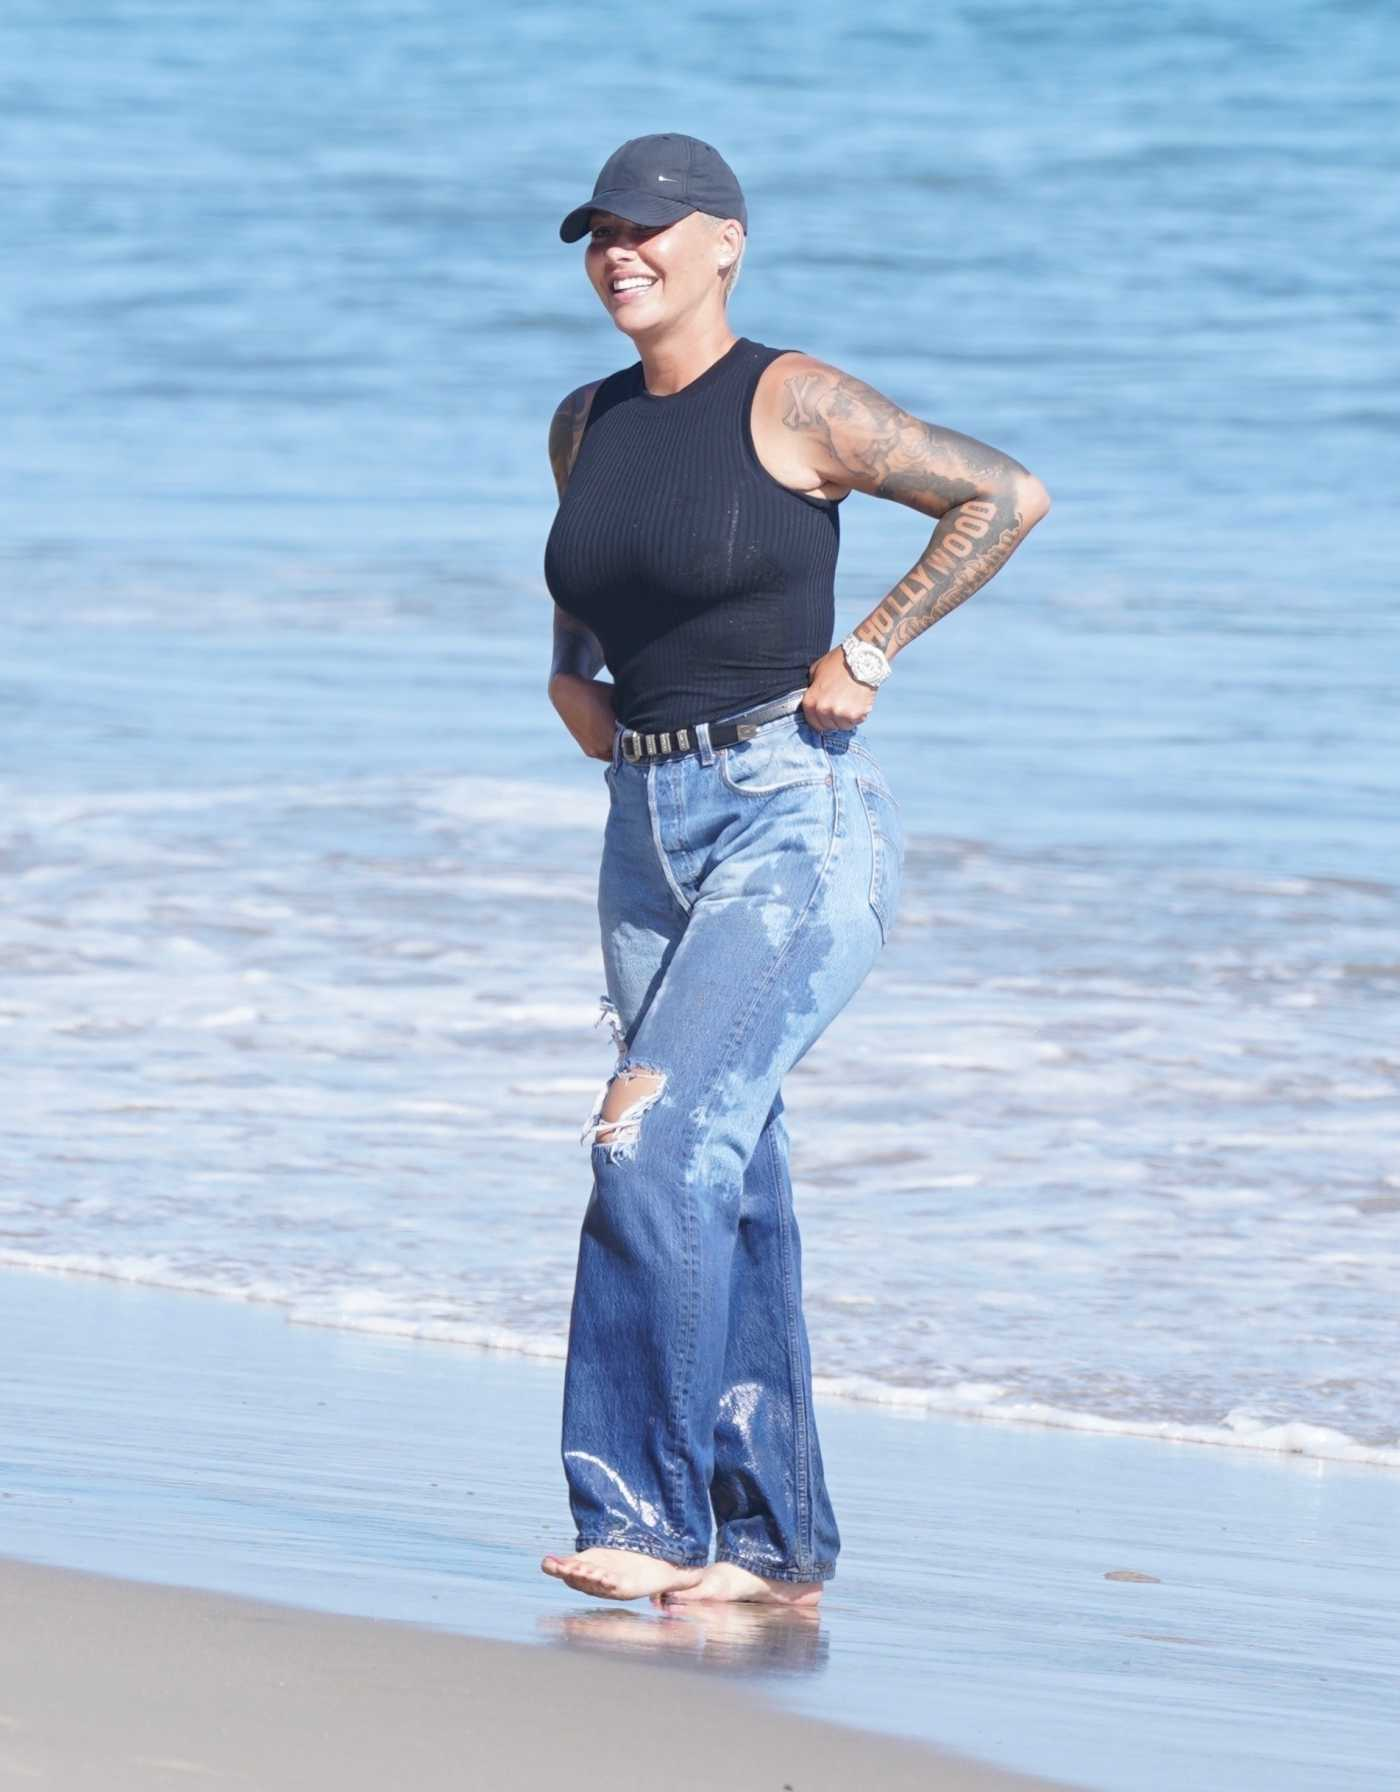 Amber Rose in a Black Cap Was Spotted on the Beach in Malibu 08/07/2020